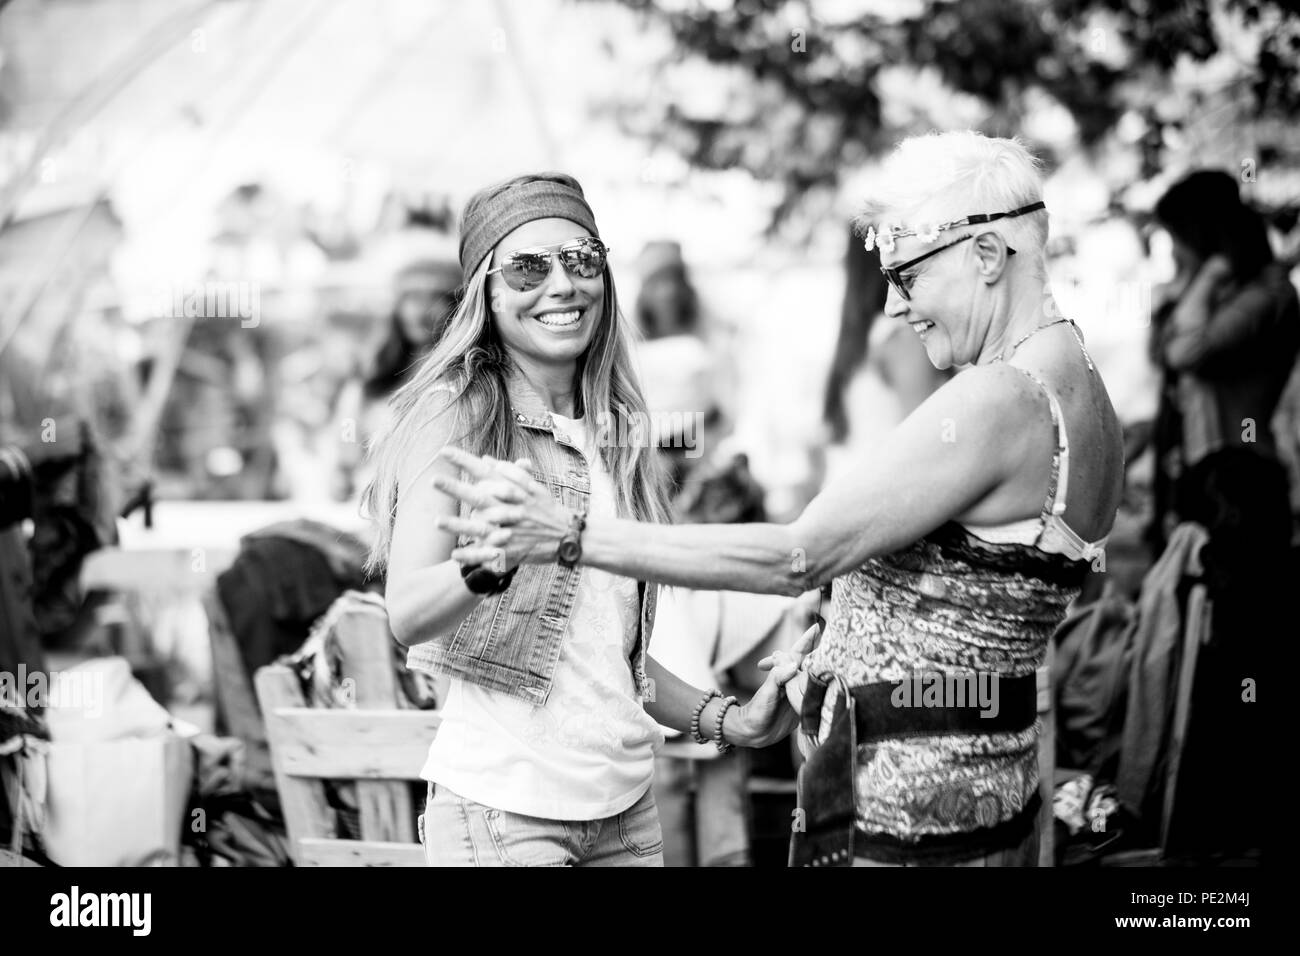 young women and girls in friendship all together celebrating and having fun in a bio natural place. smiles and laughing for group of hippies people al - Stock Image